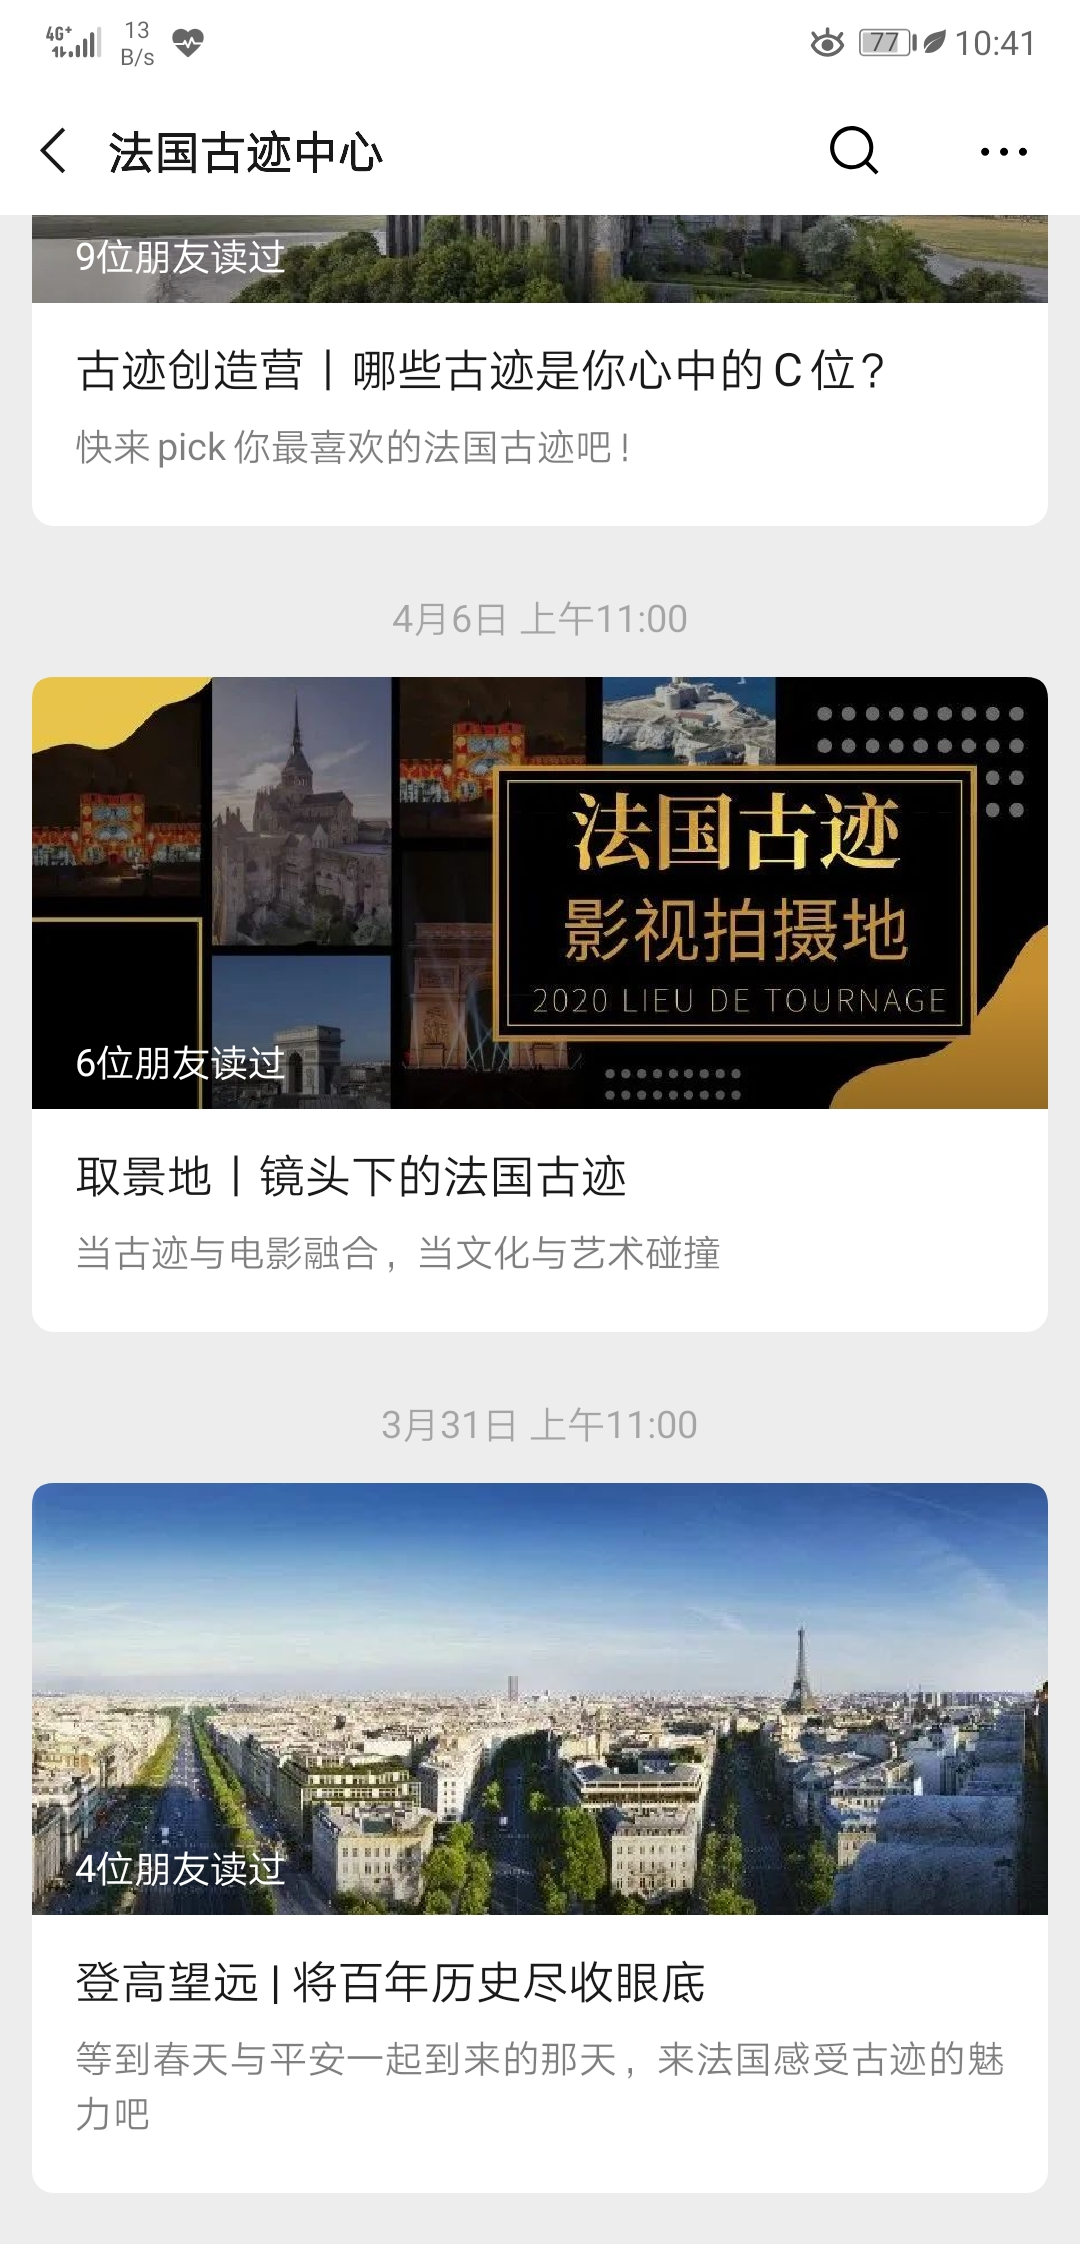 Centre Des Monuments Nationaux Wechat official account